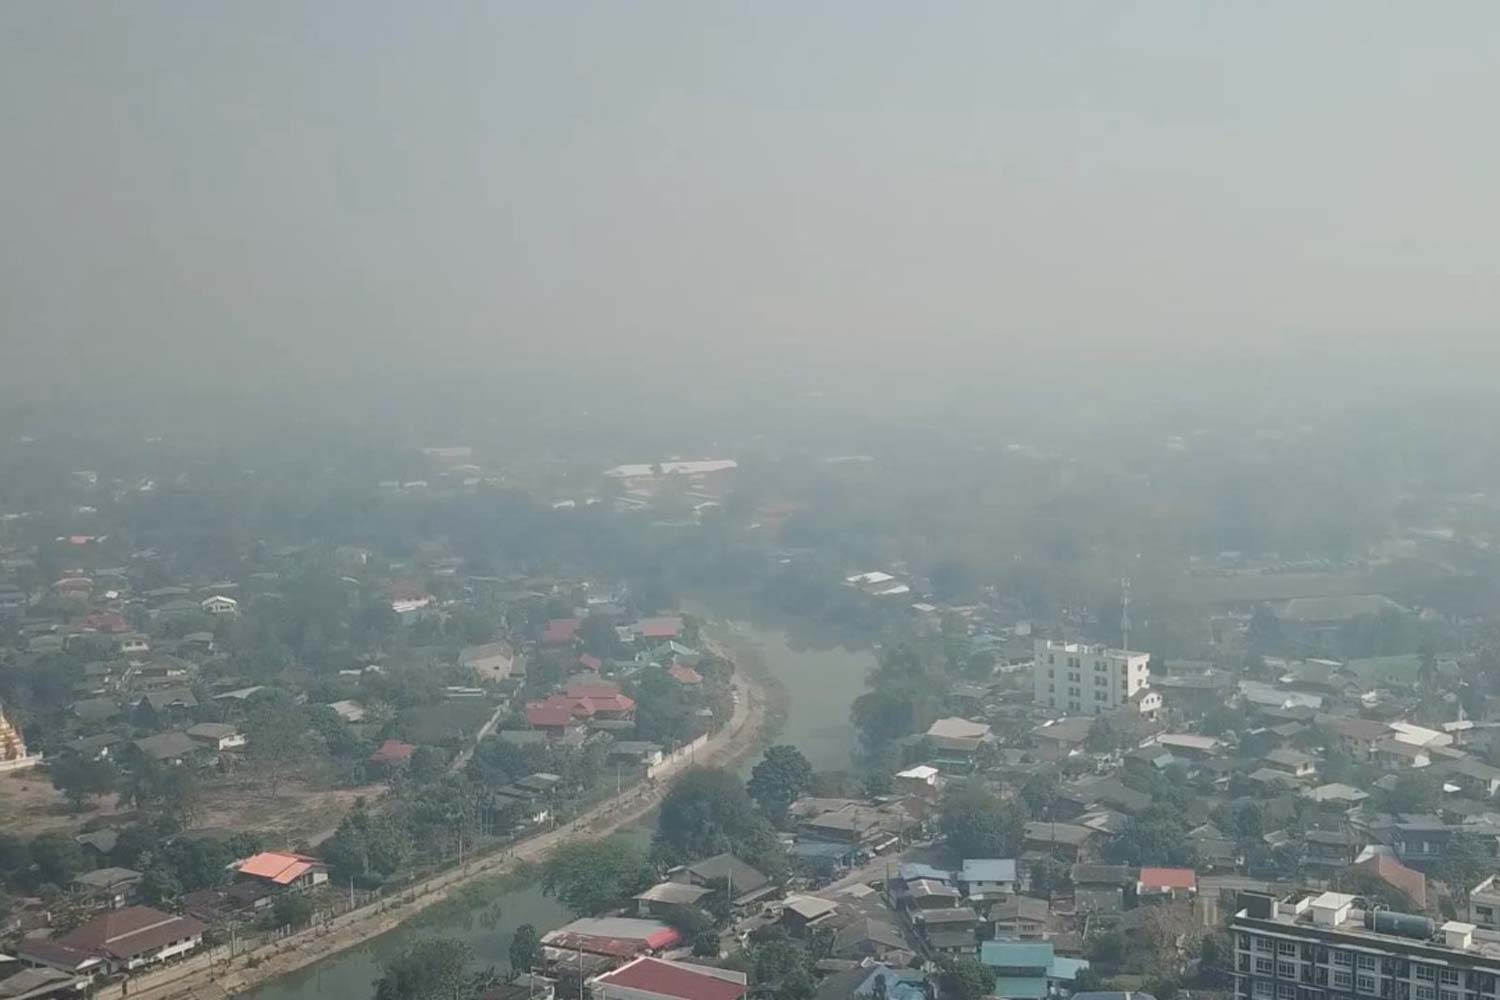 Thick smog again shrouds Muang district of Lampang on Tuesday morning. (Photo by Assawin Wongnorkaew)